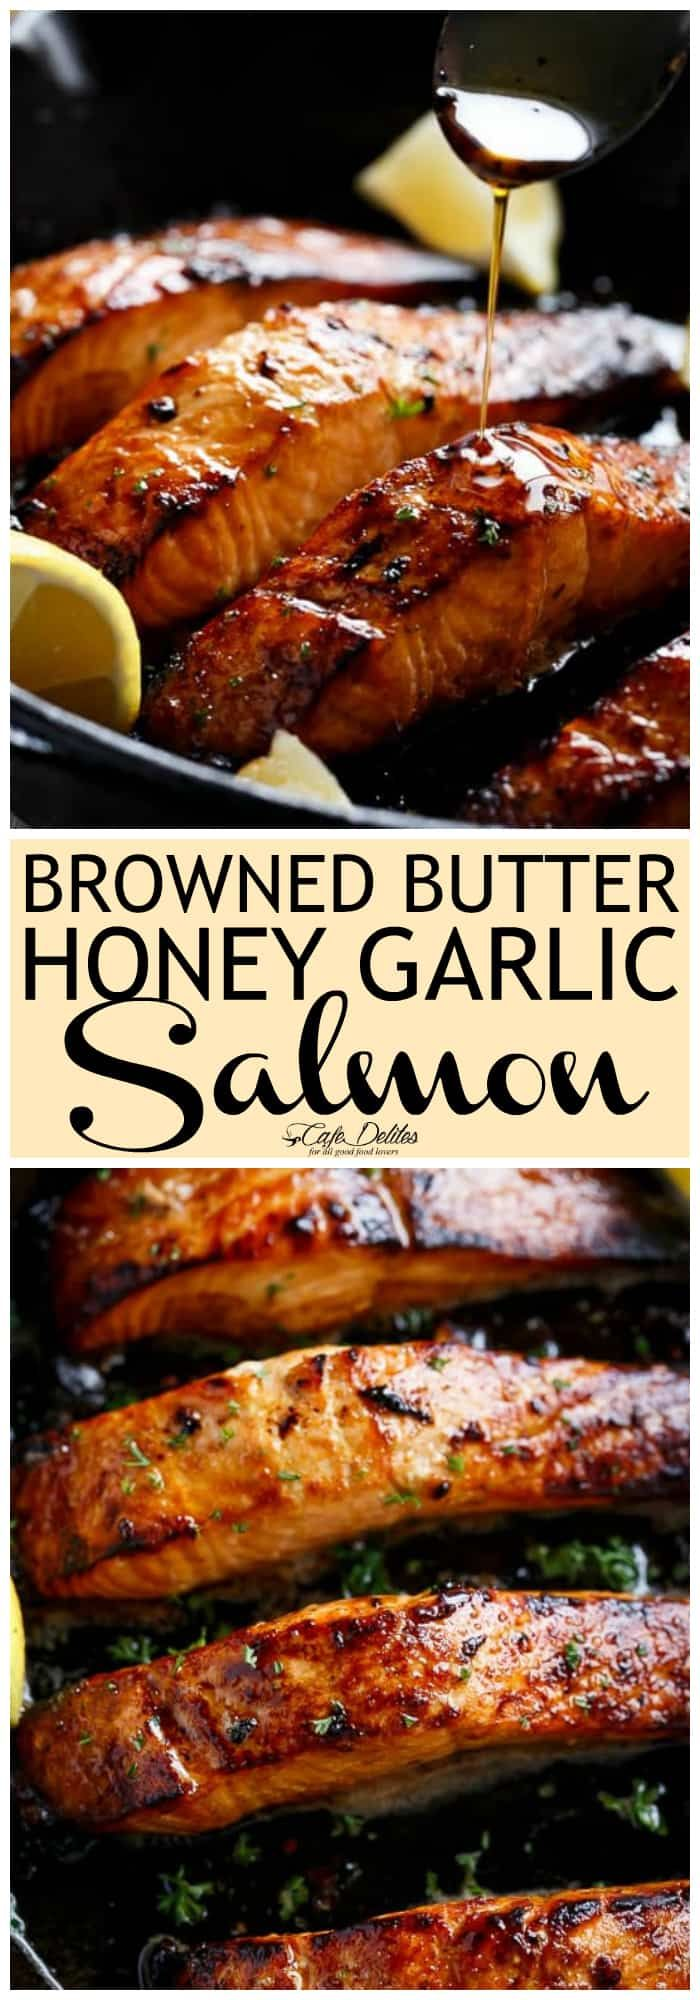 Browned Butter Honey Garlic Salmon is a great way to change up any salmon dinner! Only 3 main ingredients in under 15 minutes! #salmon #seafood #easy #recipes #dinner